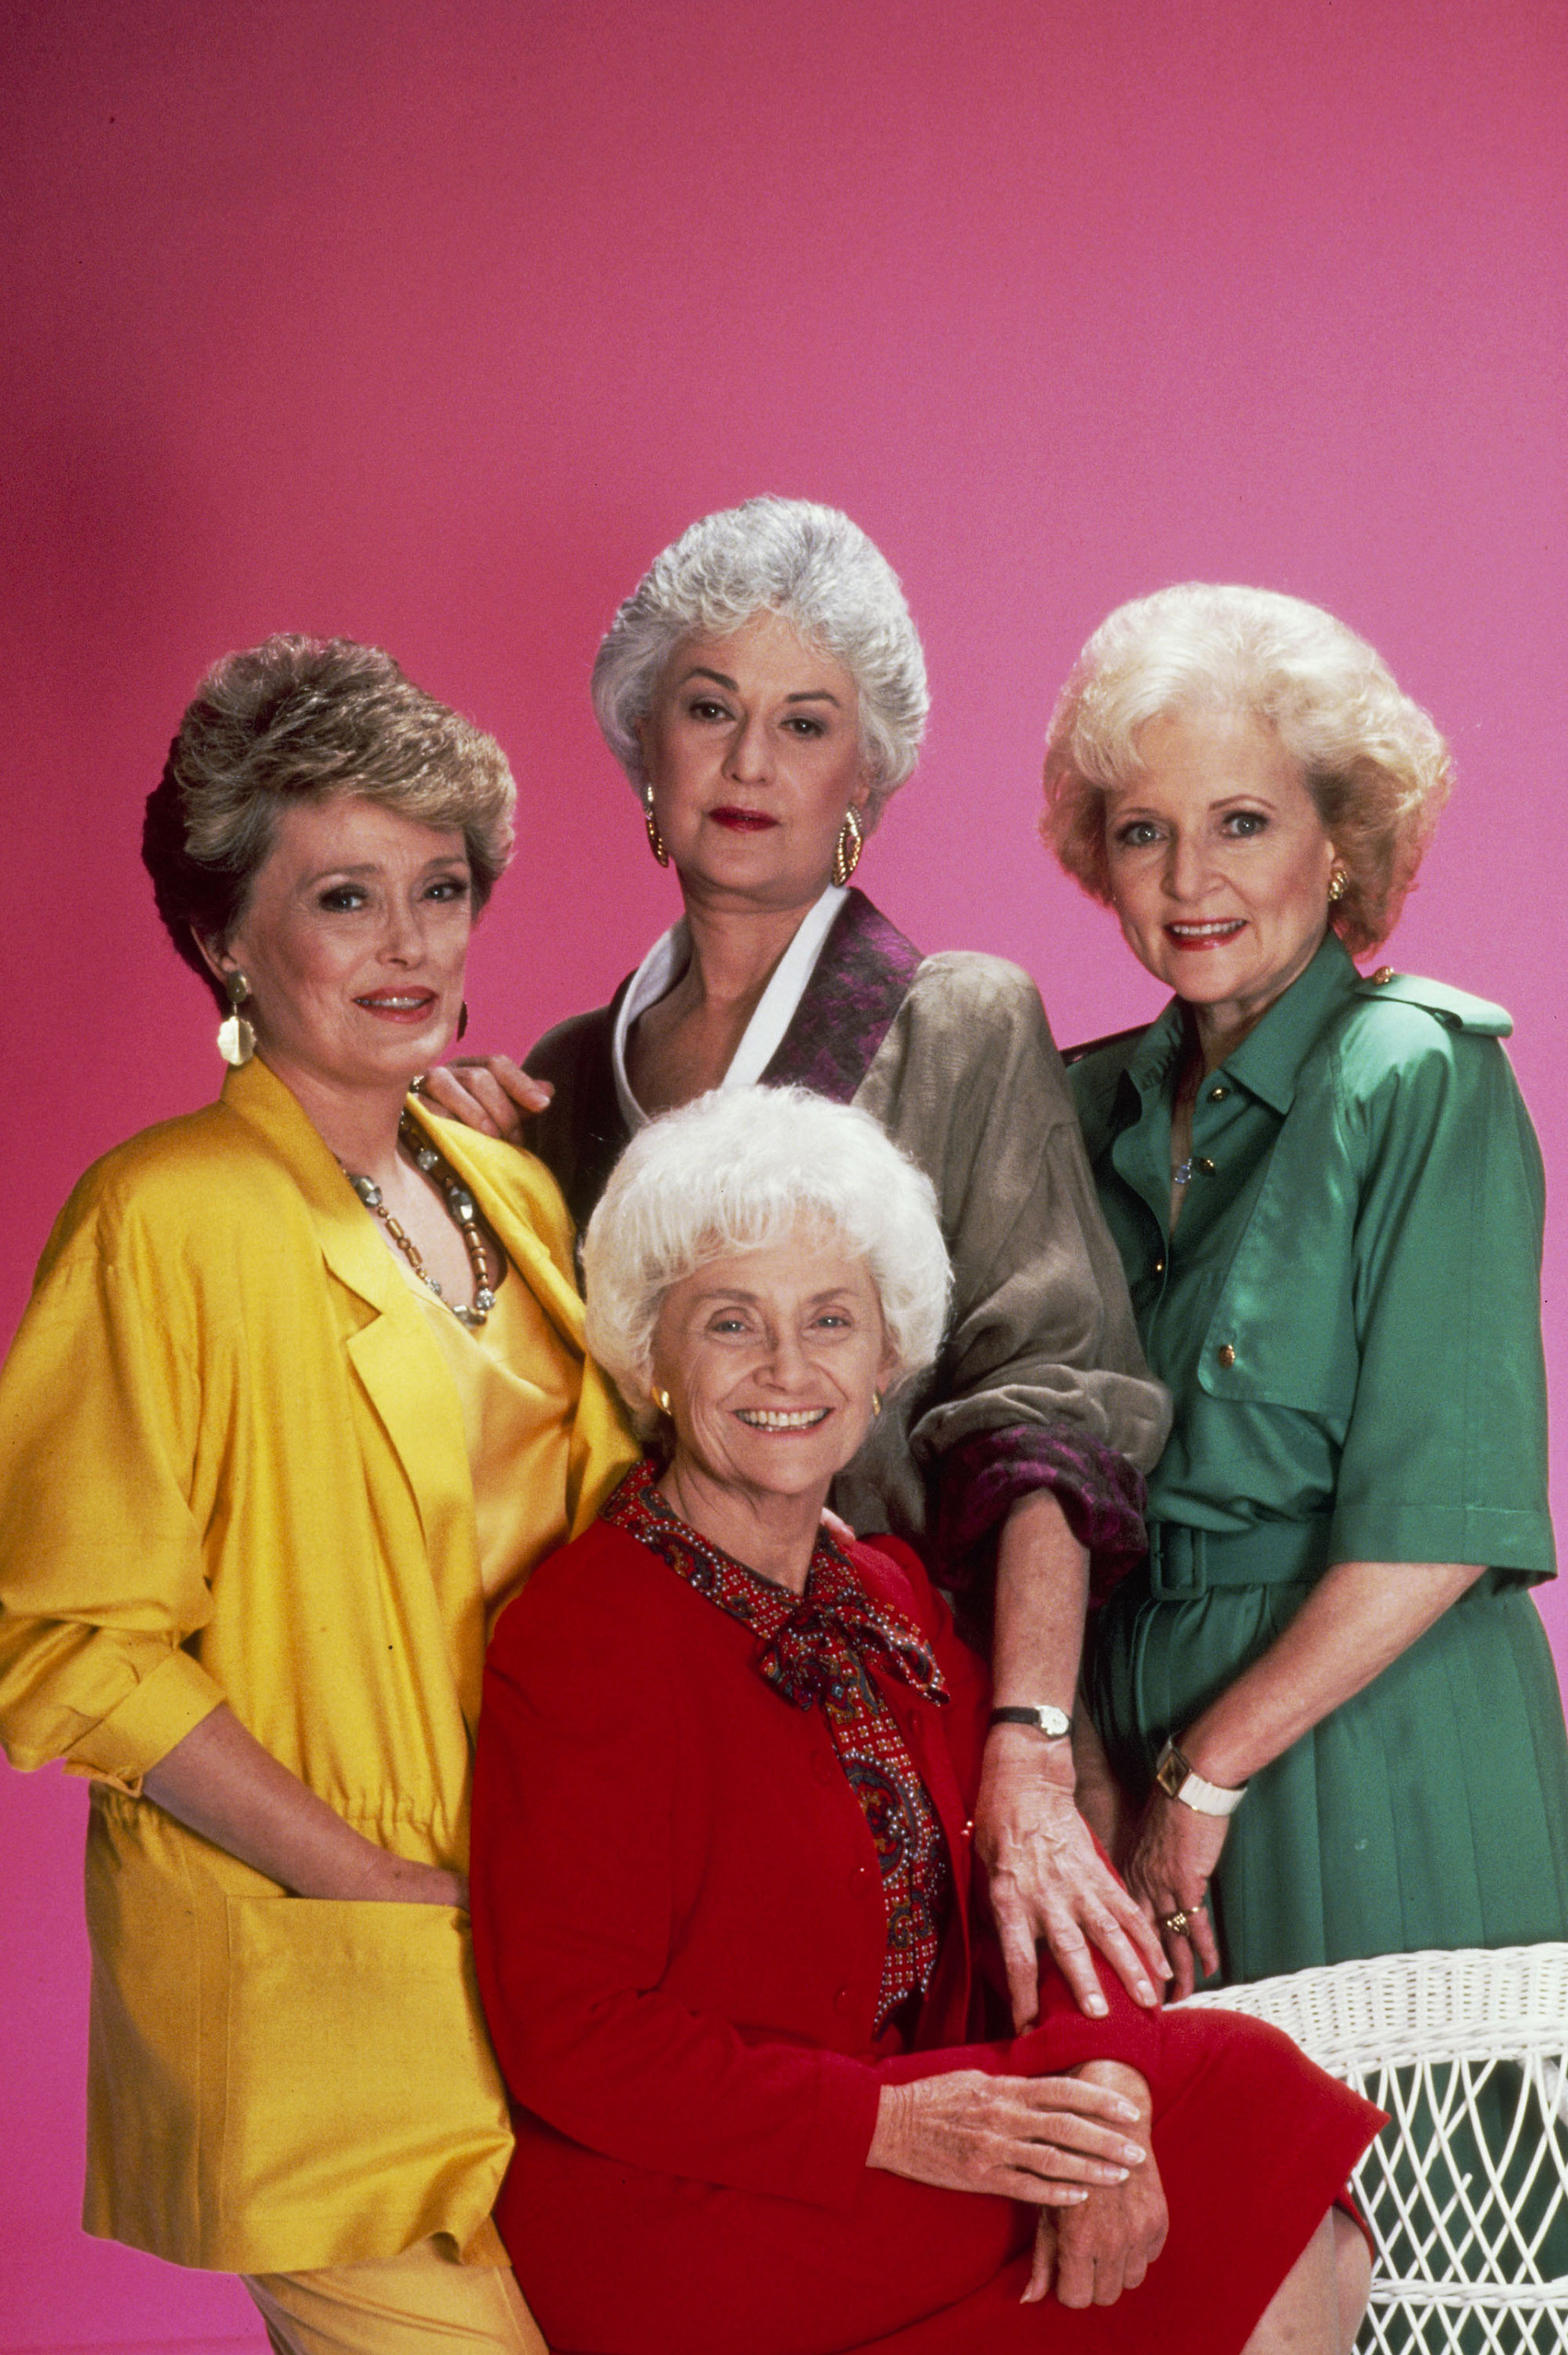 The Golden Girls Images HQ HD Wallpaper And Background Photos